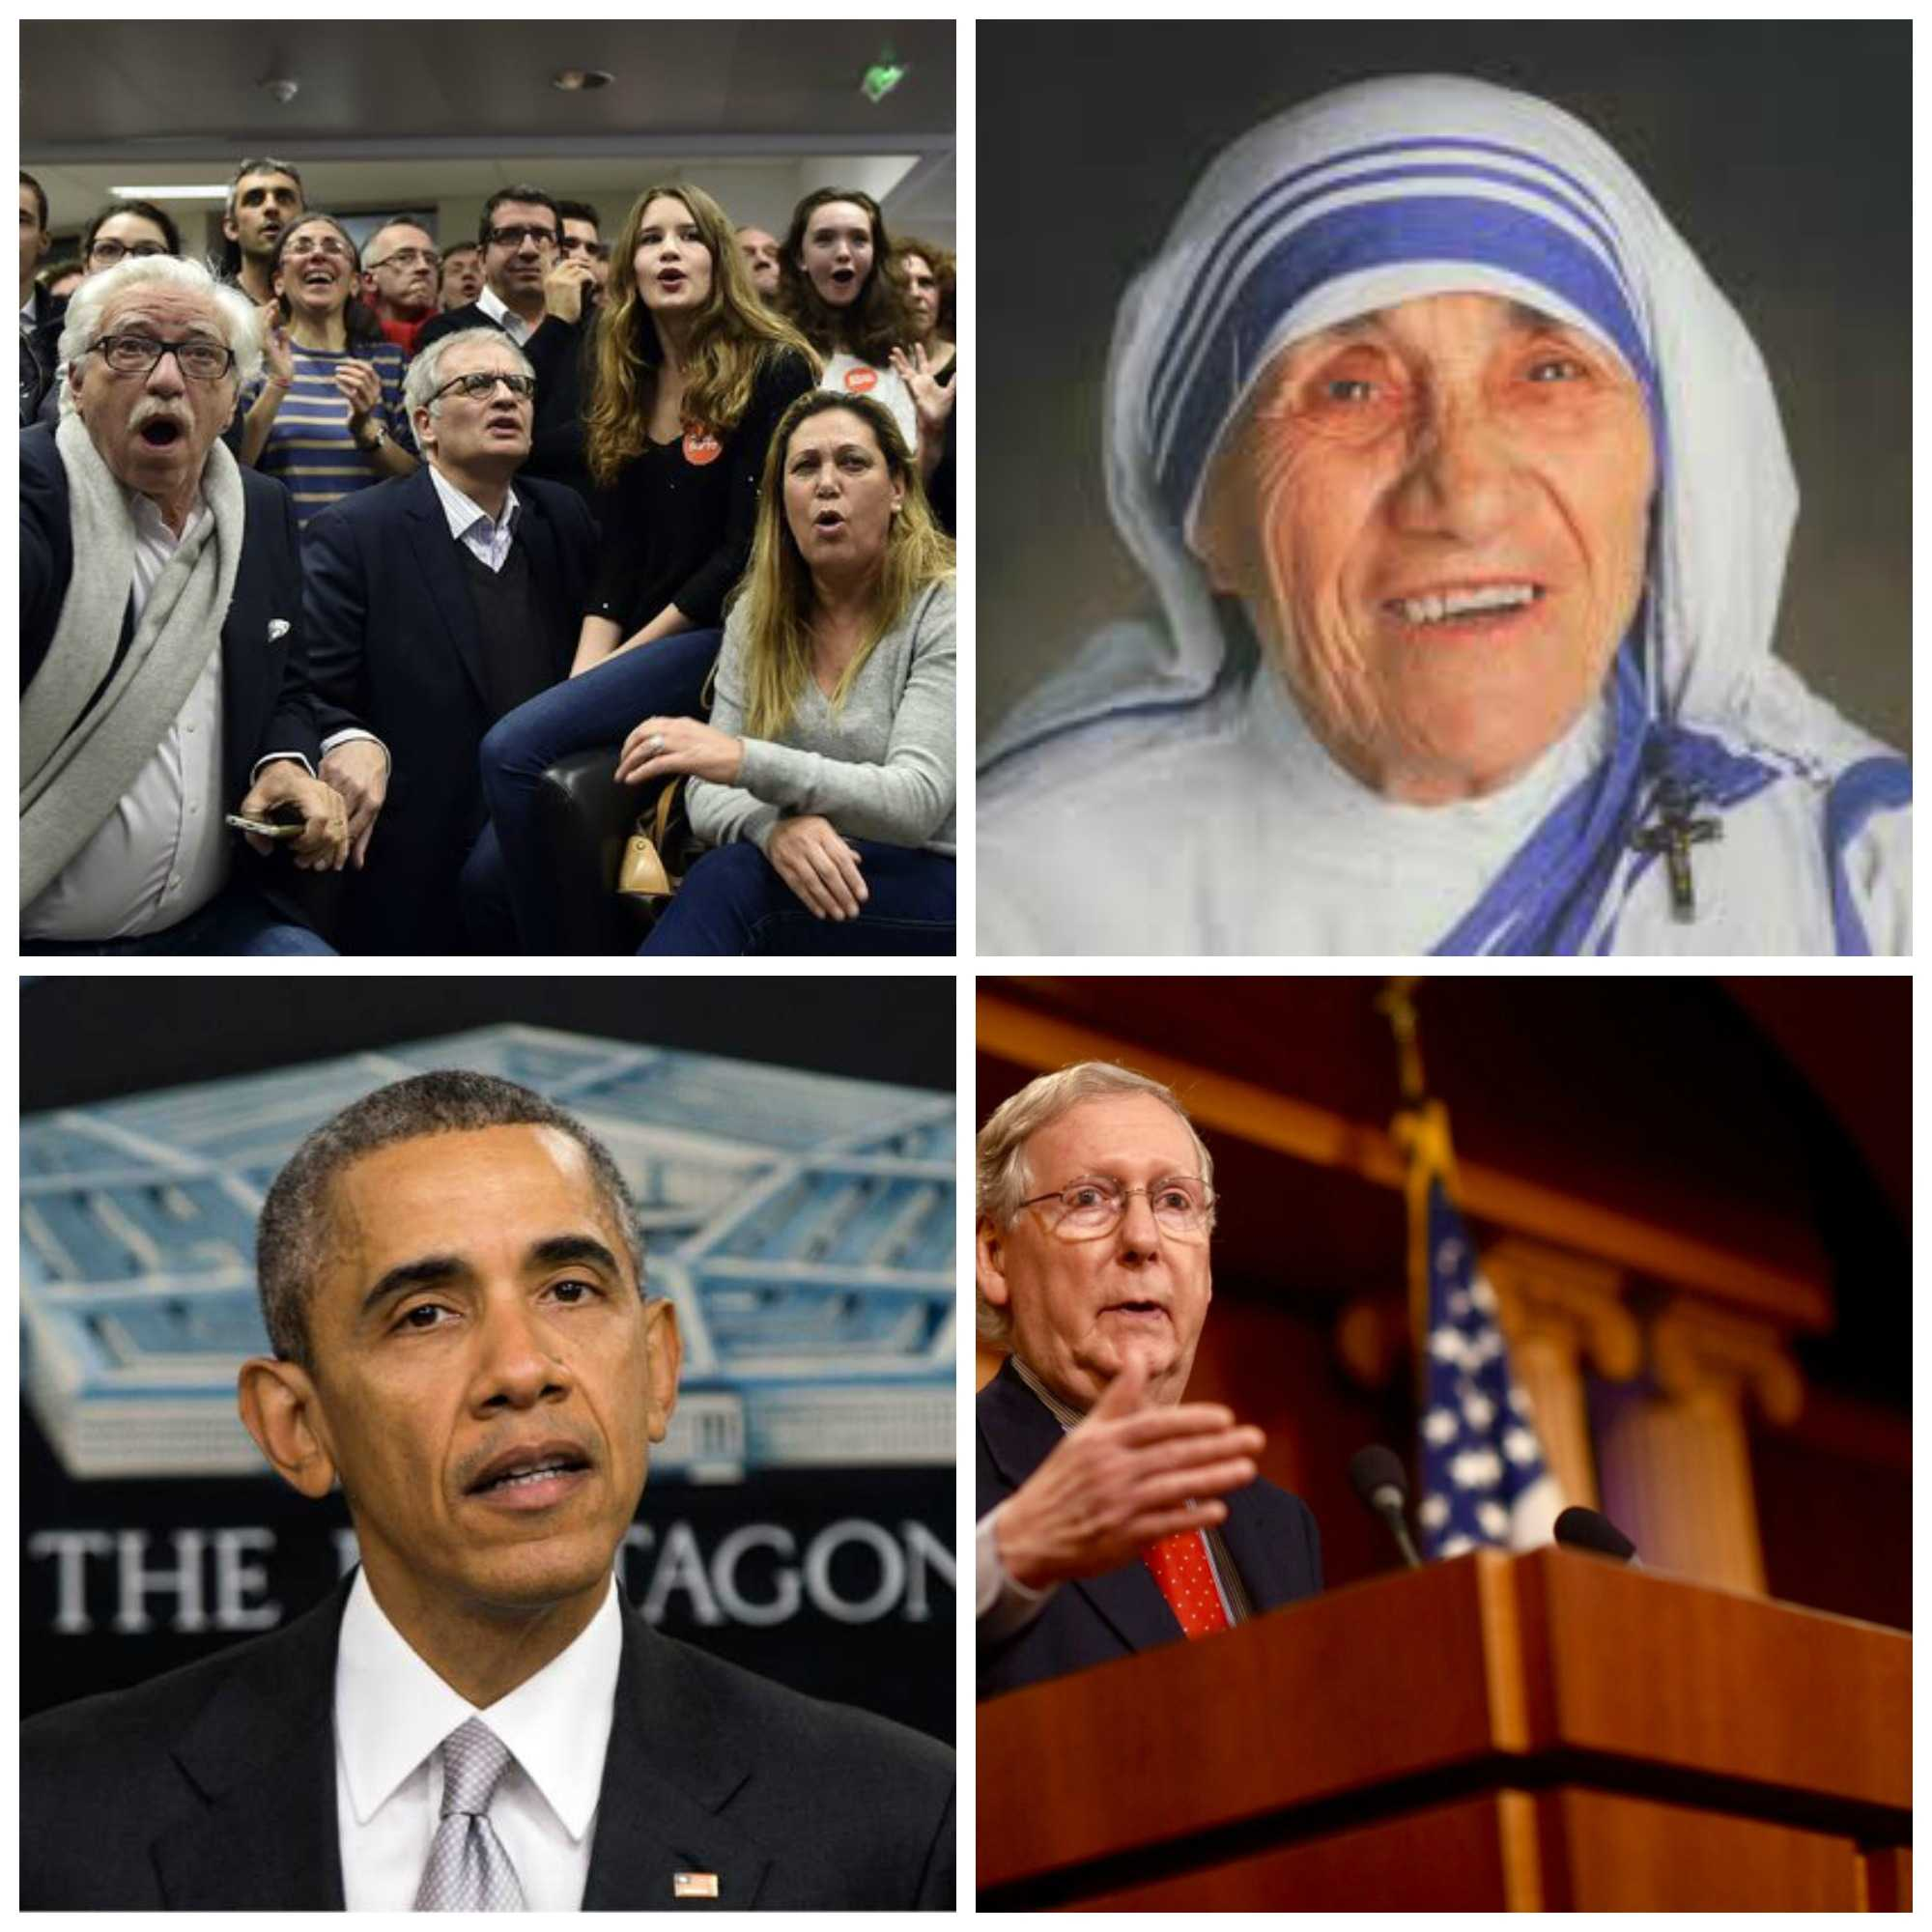 National Front Party loses in France, Mother Teresa to be a saint, US striking harder against ISIS, Congress budget approved and more in this week's recap.